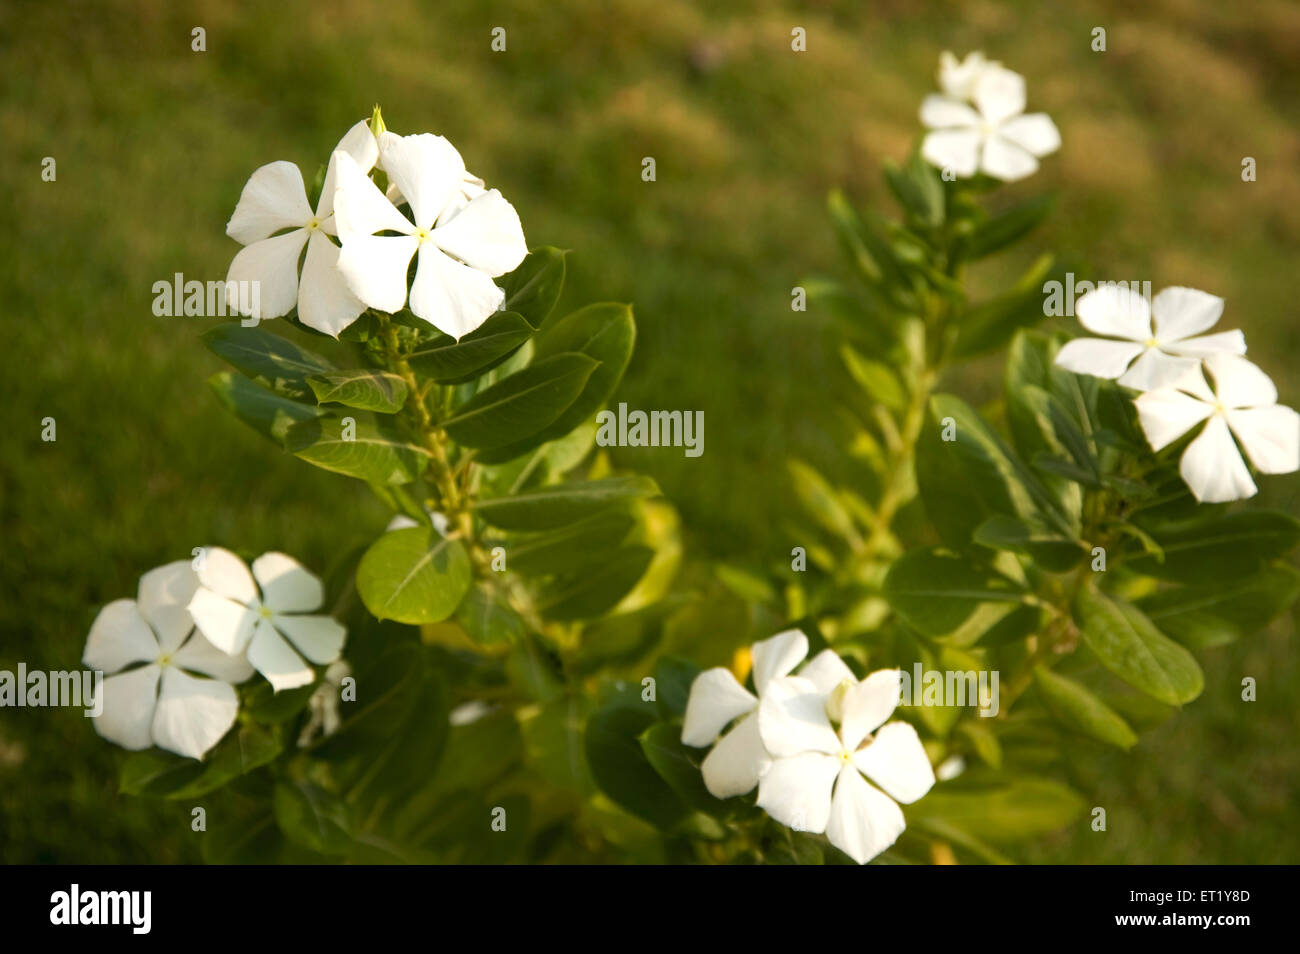 White flower common name creeping phlox botanical name phlox white flower common name creeping phlox botanical name phlox subulata family polemoniaceae phlox family india mightylinksfo